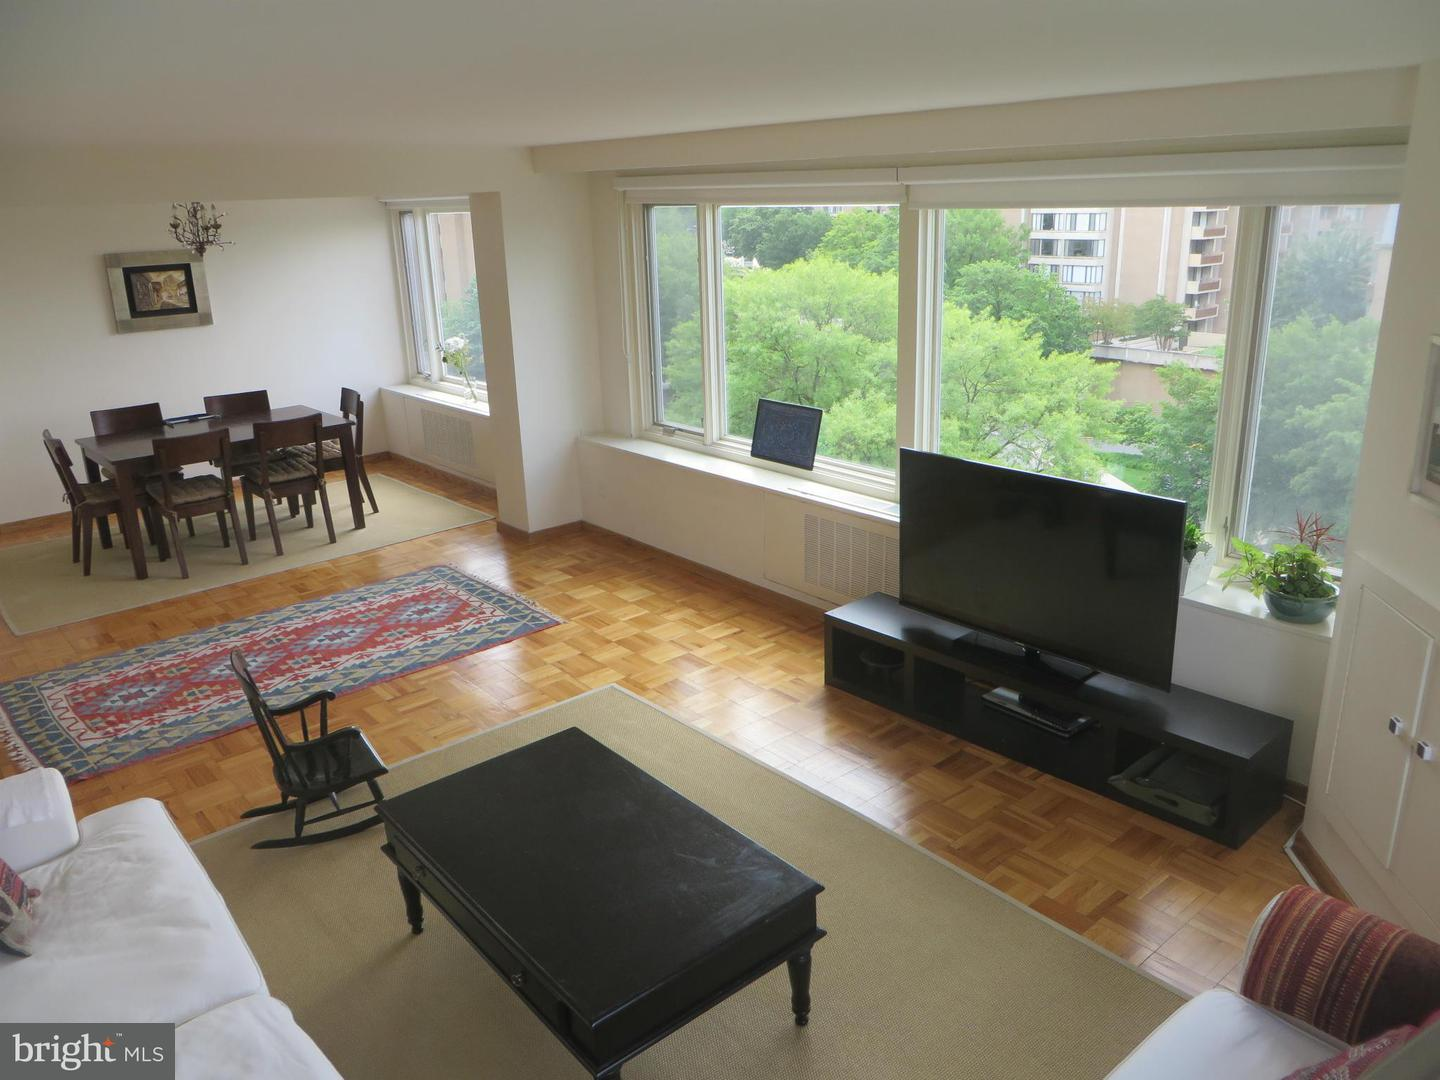 Other Residential for Rent at 2475 Virginia Ave NW #822 Washington, District Of Columbia 20037 United States